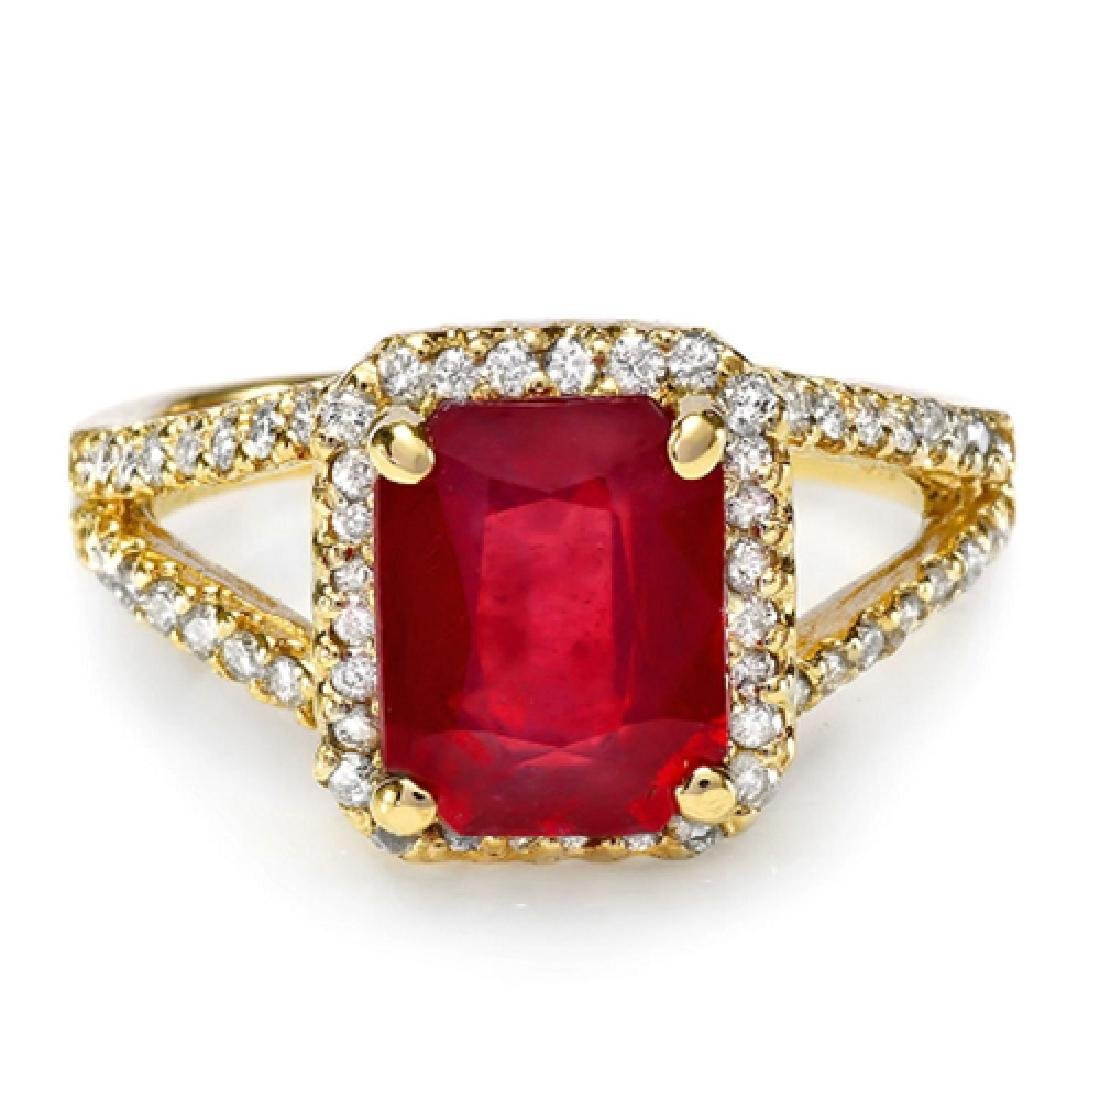 3.70 Carat Natural Ruby 18K Solid Yellow Gold Diamond